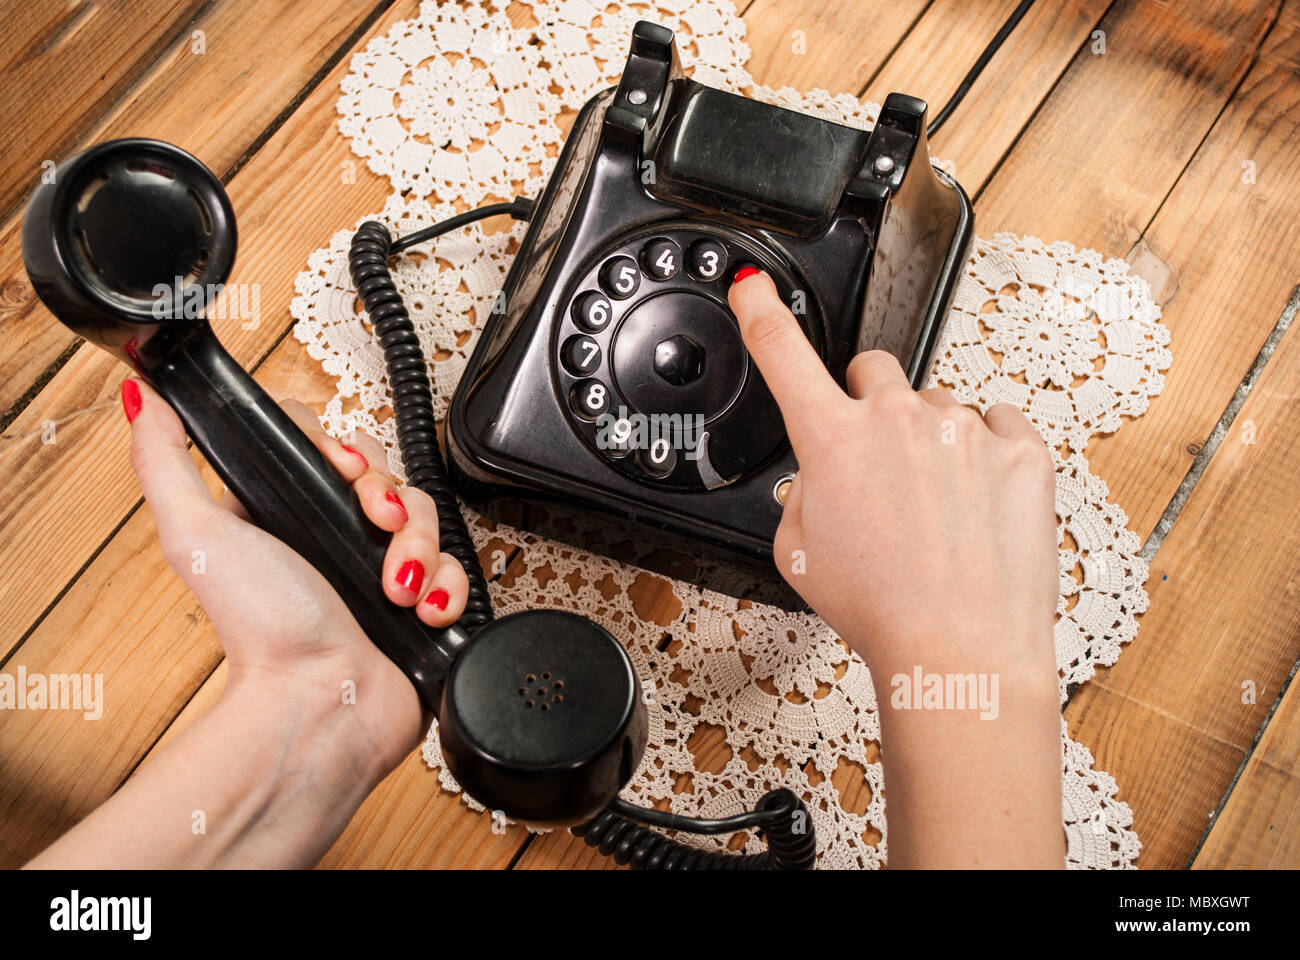 Woman hand dialing number on old phone on lace tablecloths and wooden background - Stock Image